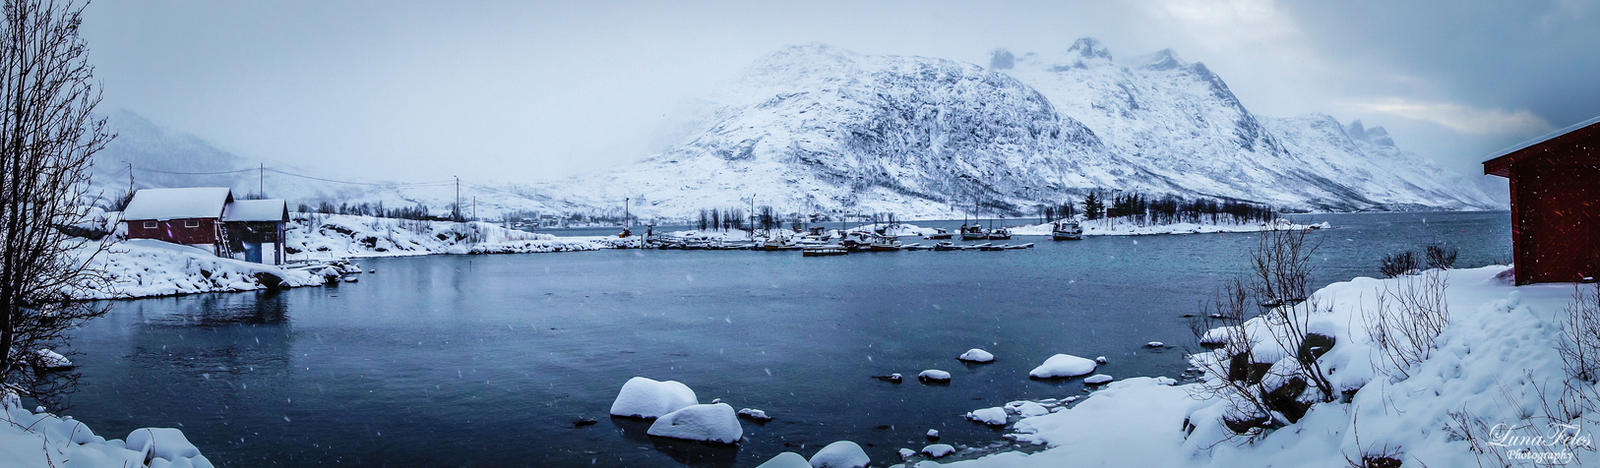 Ersfjordbotn - it's snowing by LunaFeles